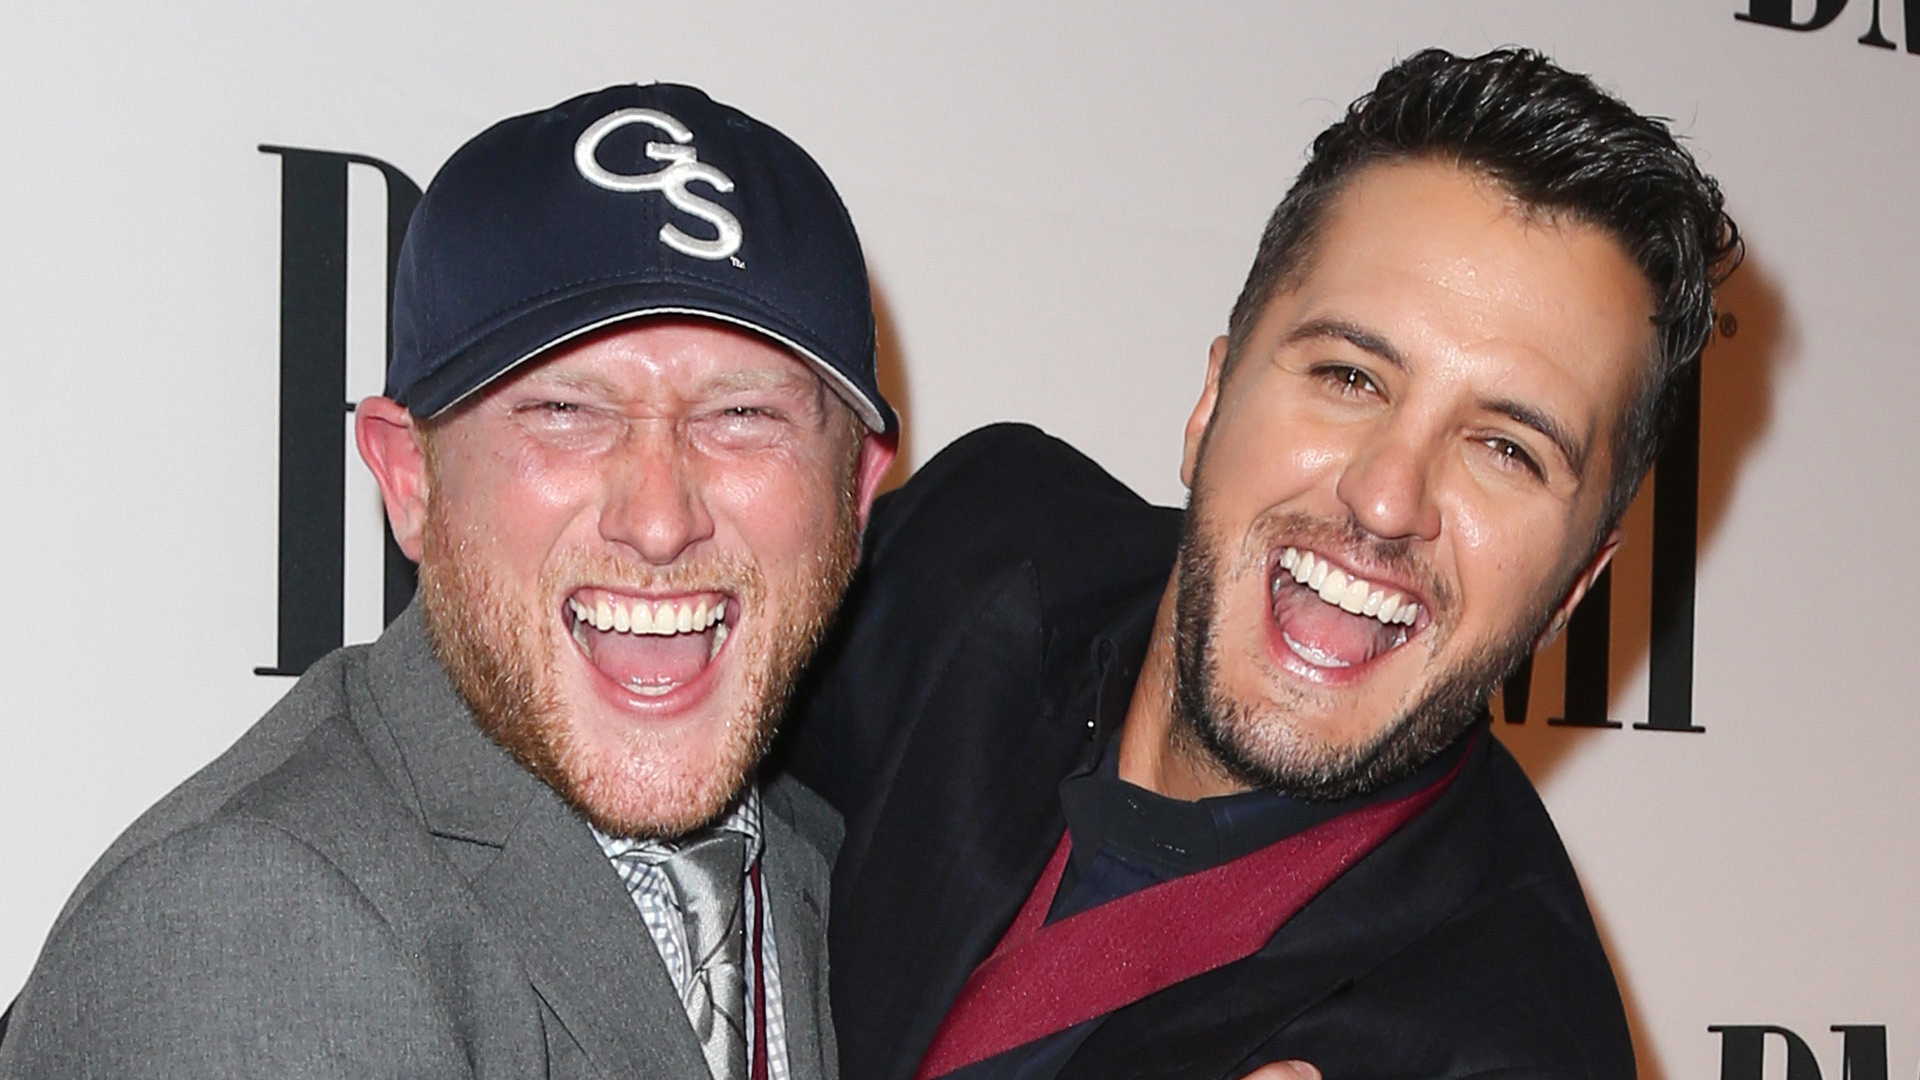 Cole Swindell and Luke Bryan